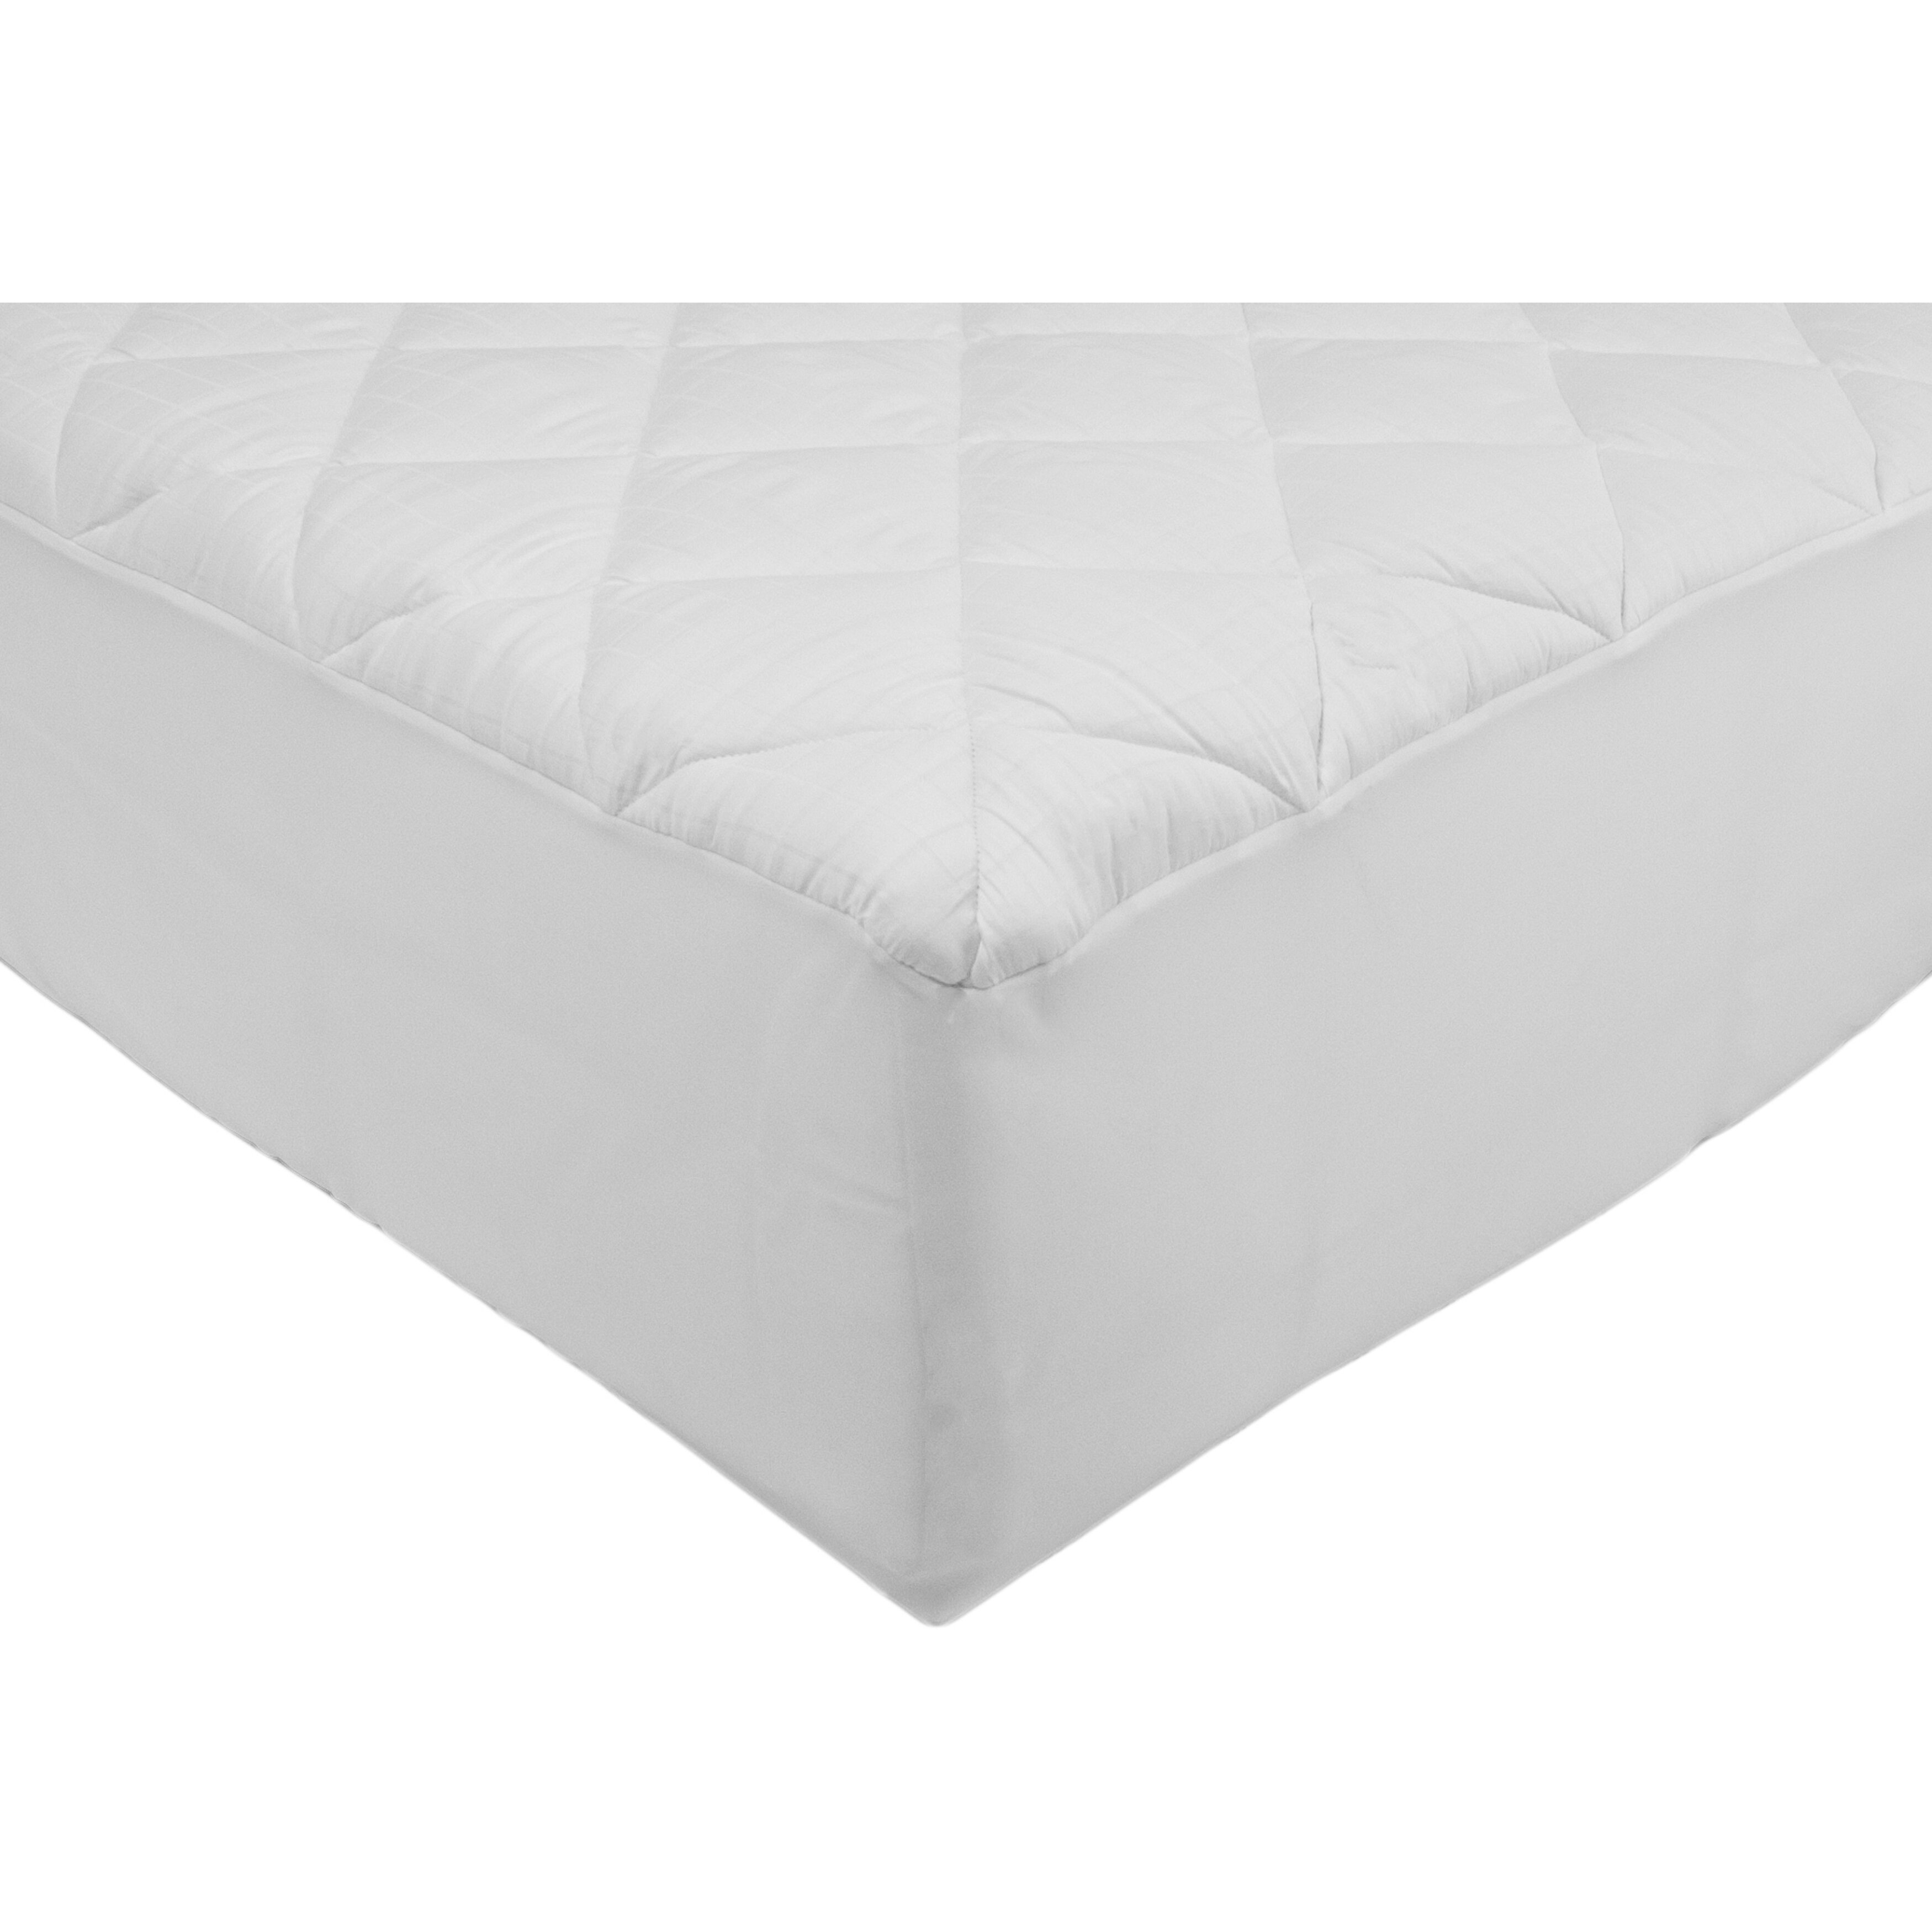 St James Home Hotel Deluxe Signature Mattress Pad